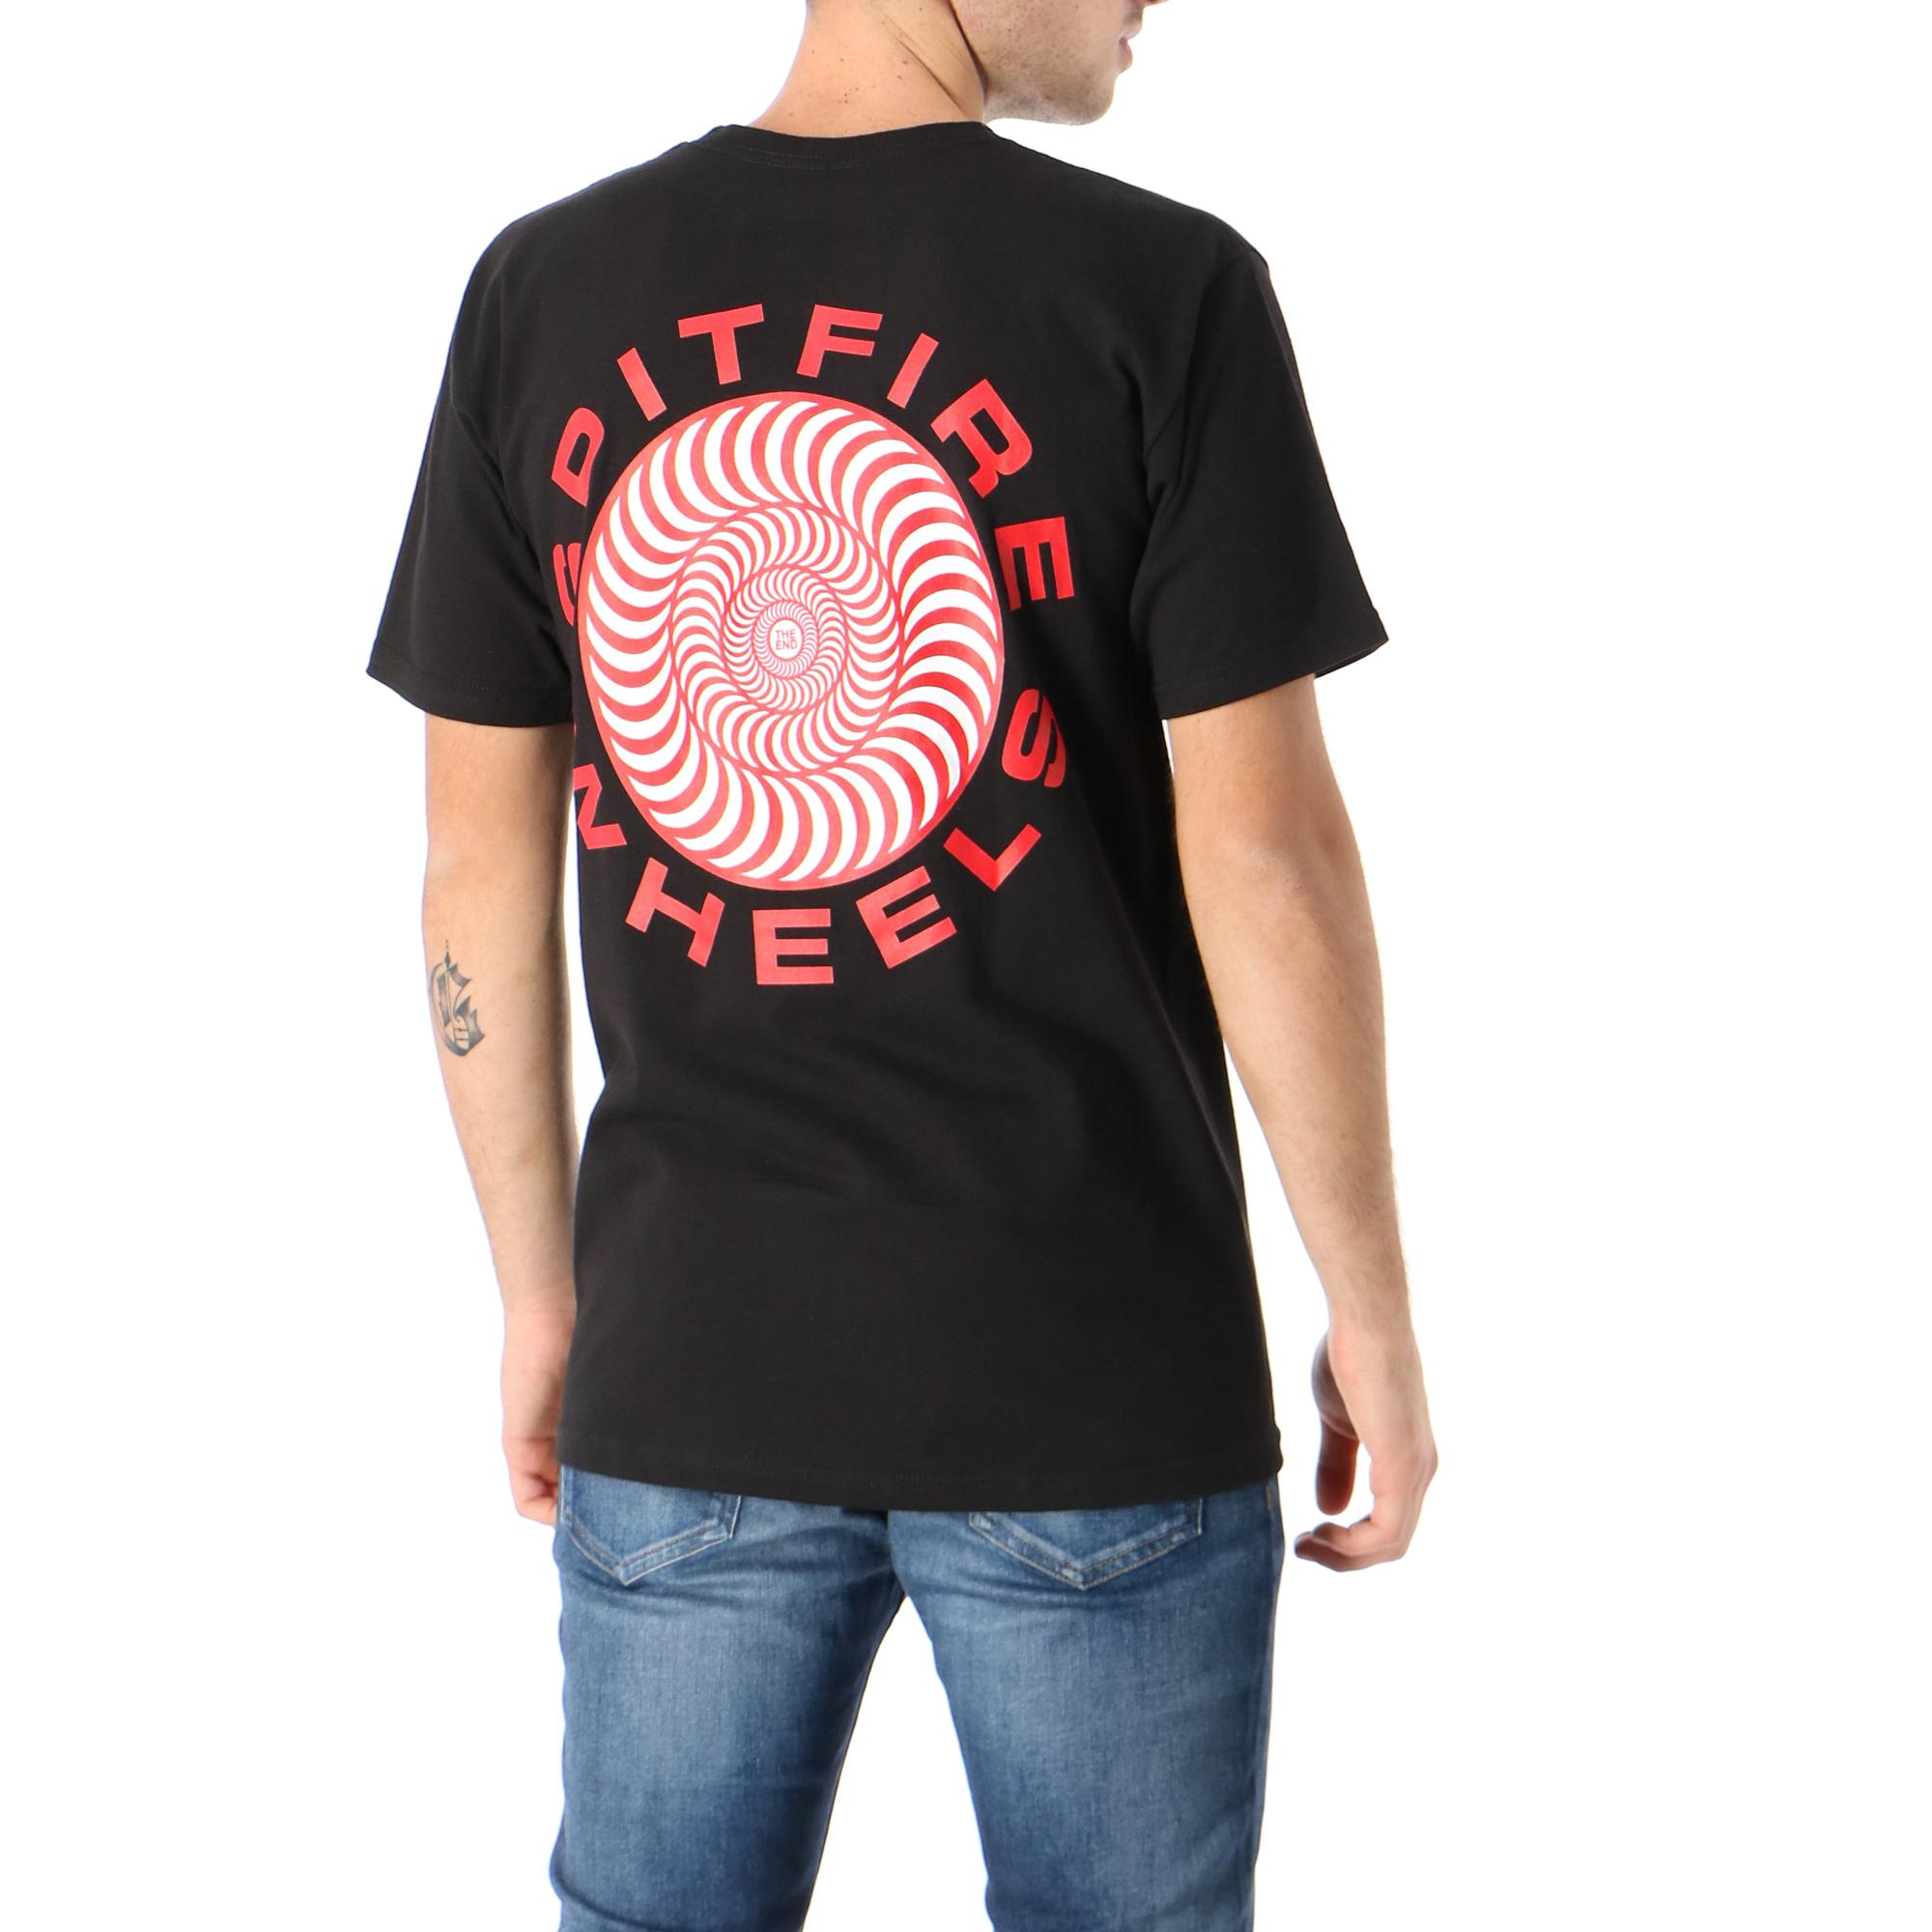 Spitfire Classic 87 Swirl Tee Black red white prints